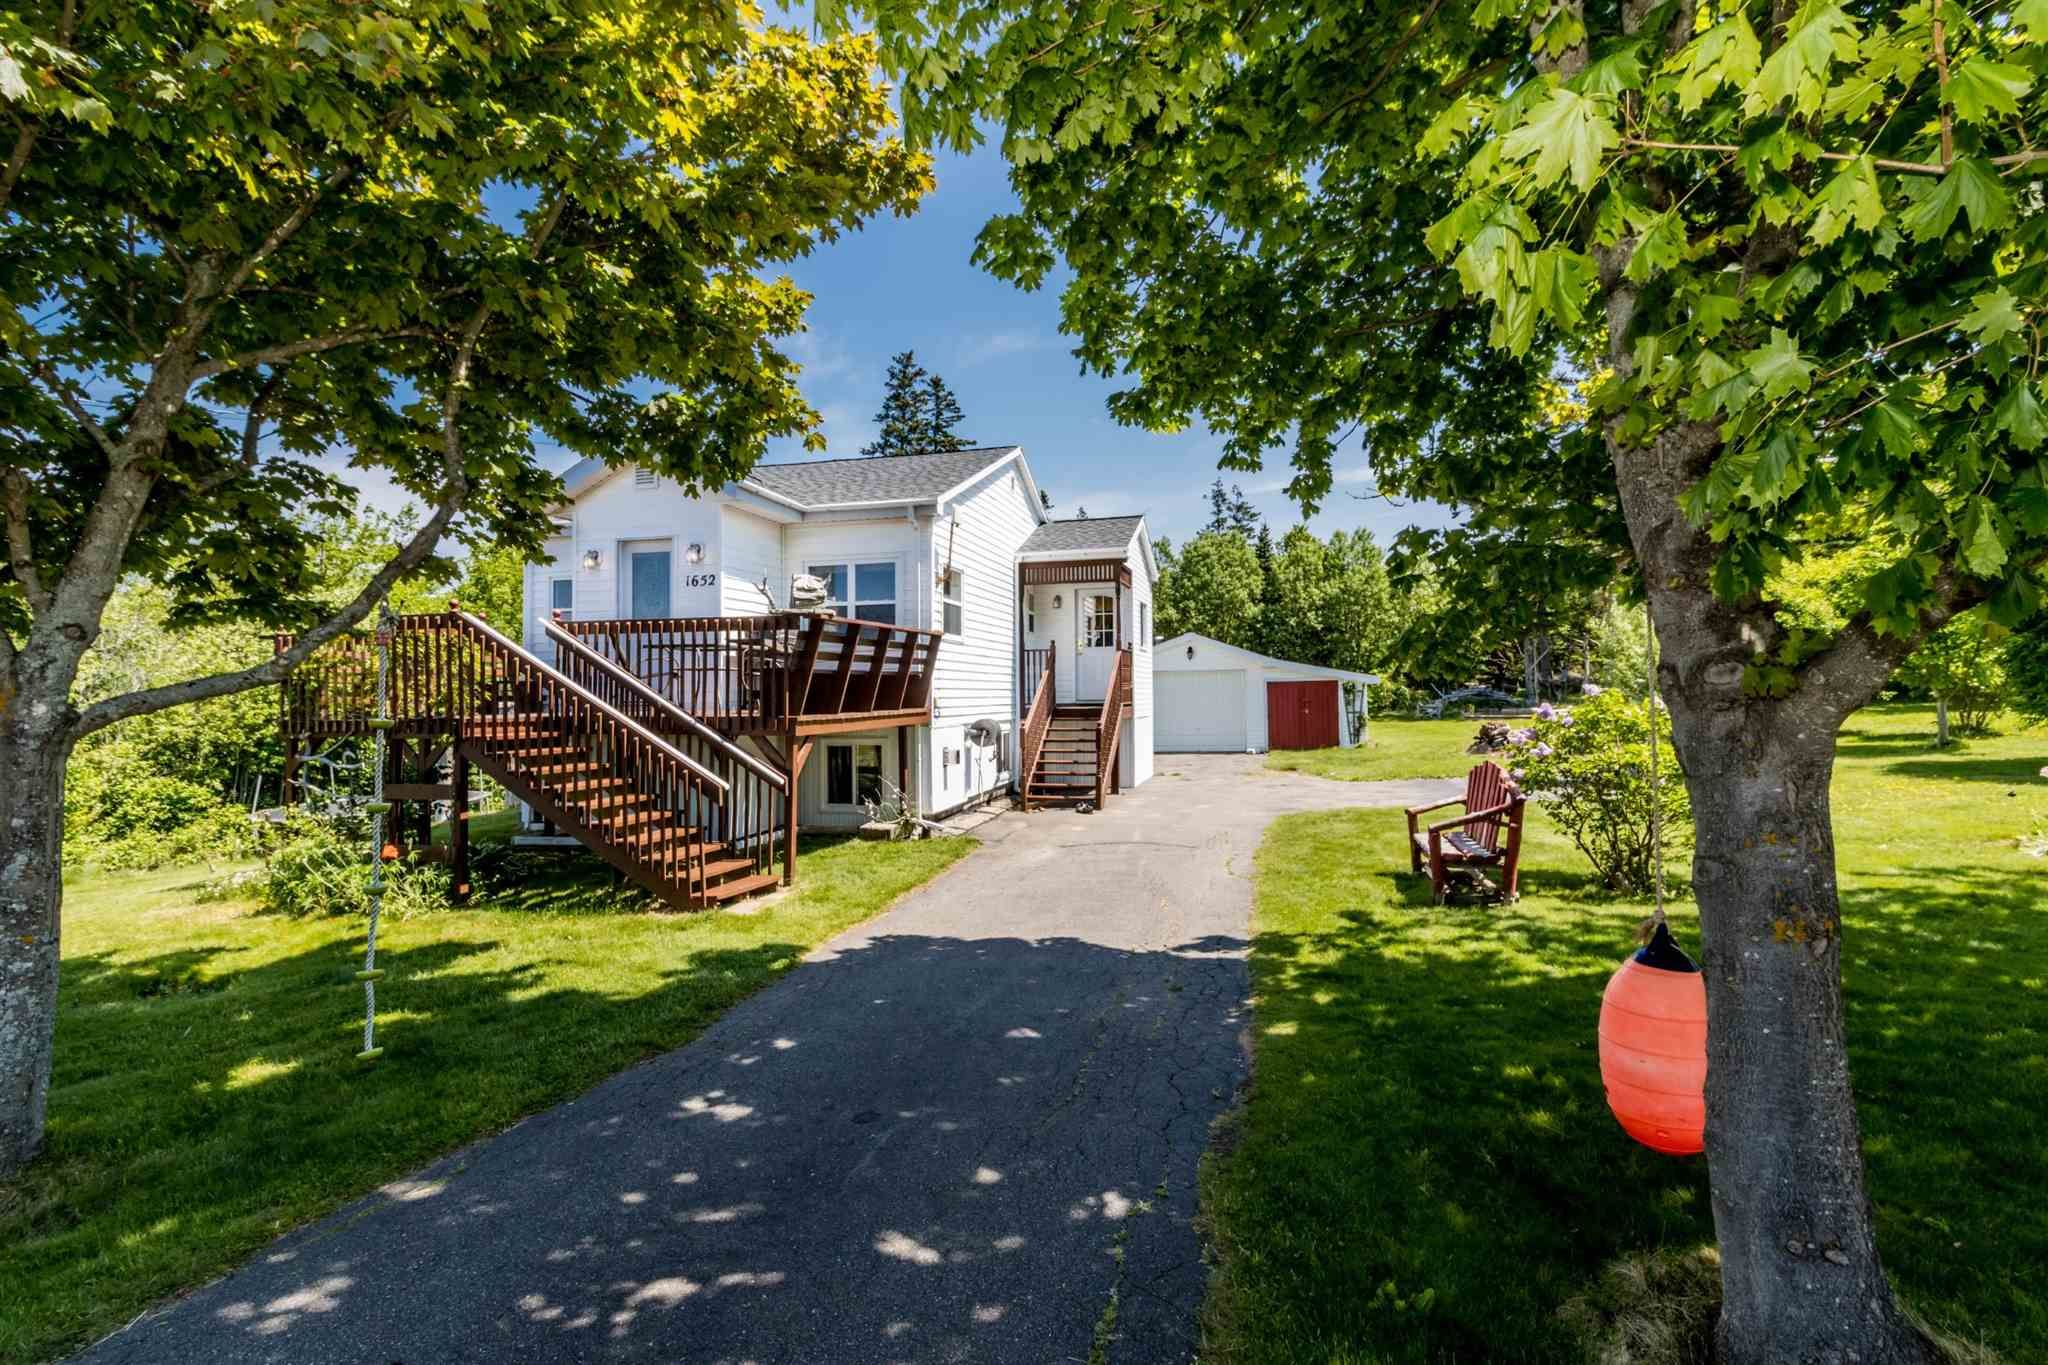 Main Photo: 1652 Ben Phinney Road in Margaretsville: 400-Annapolis County Residential for sale (Annapolis Valley)  : MLS®# 202116326